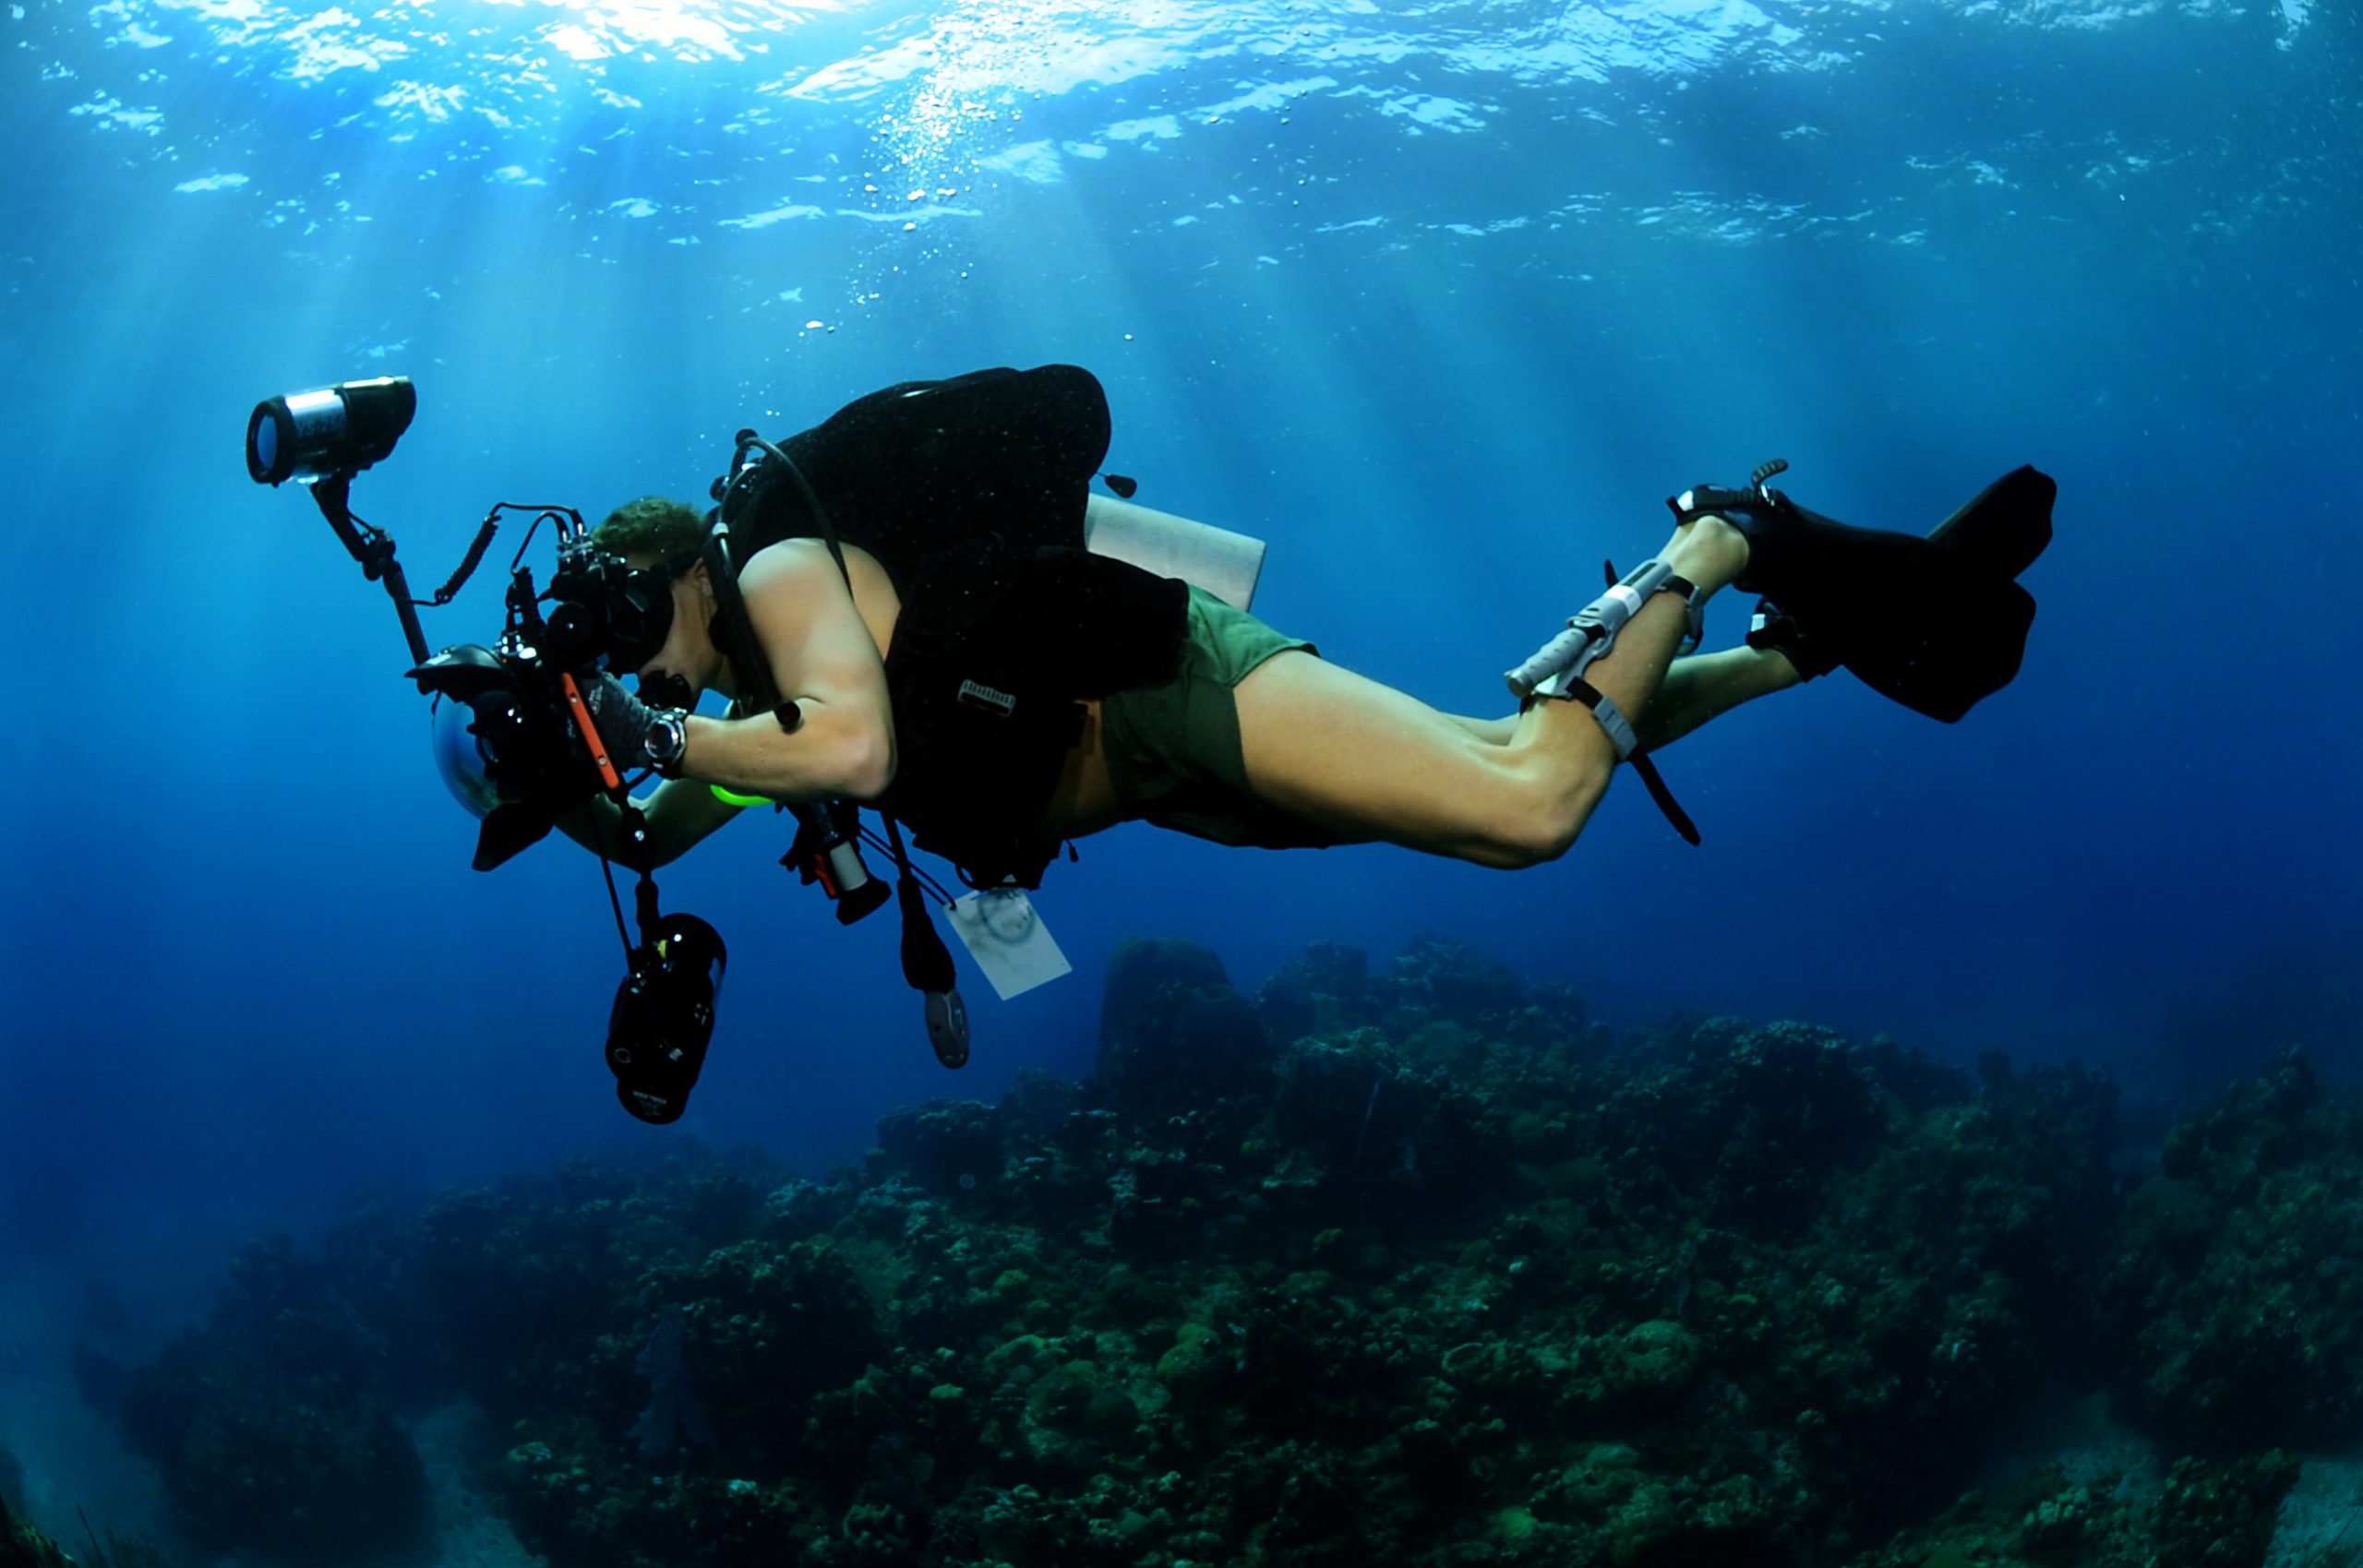 7 Simple Ways to Improve Your Underwater Photography